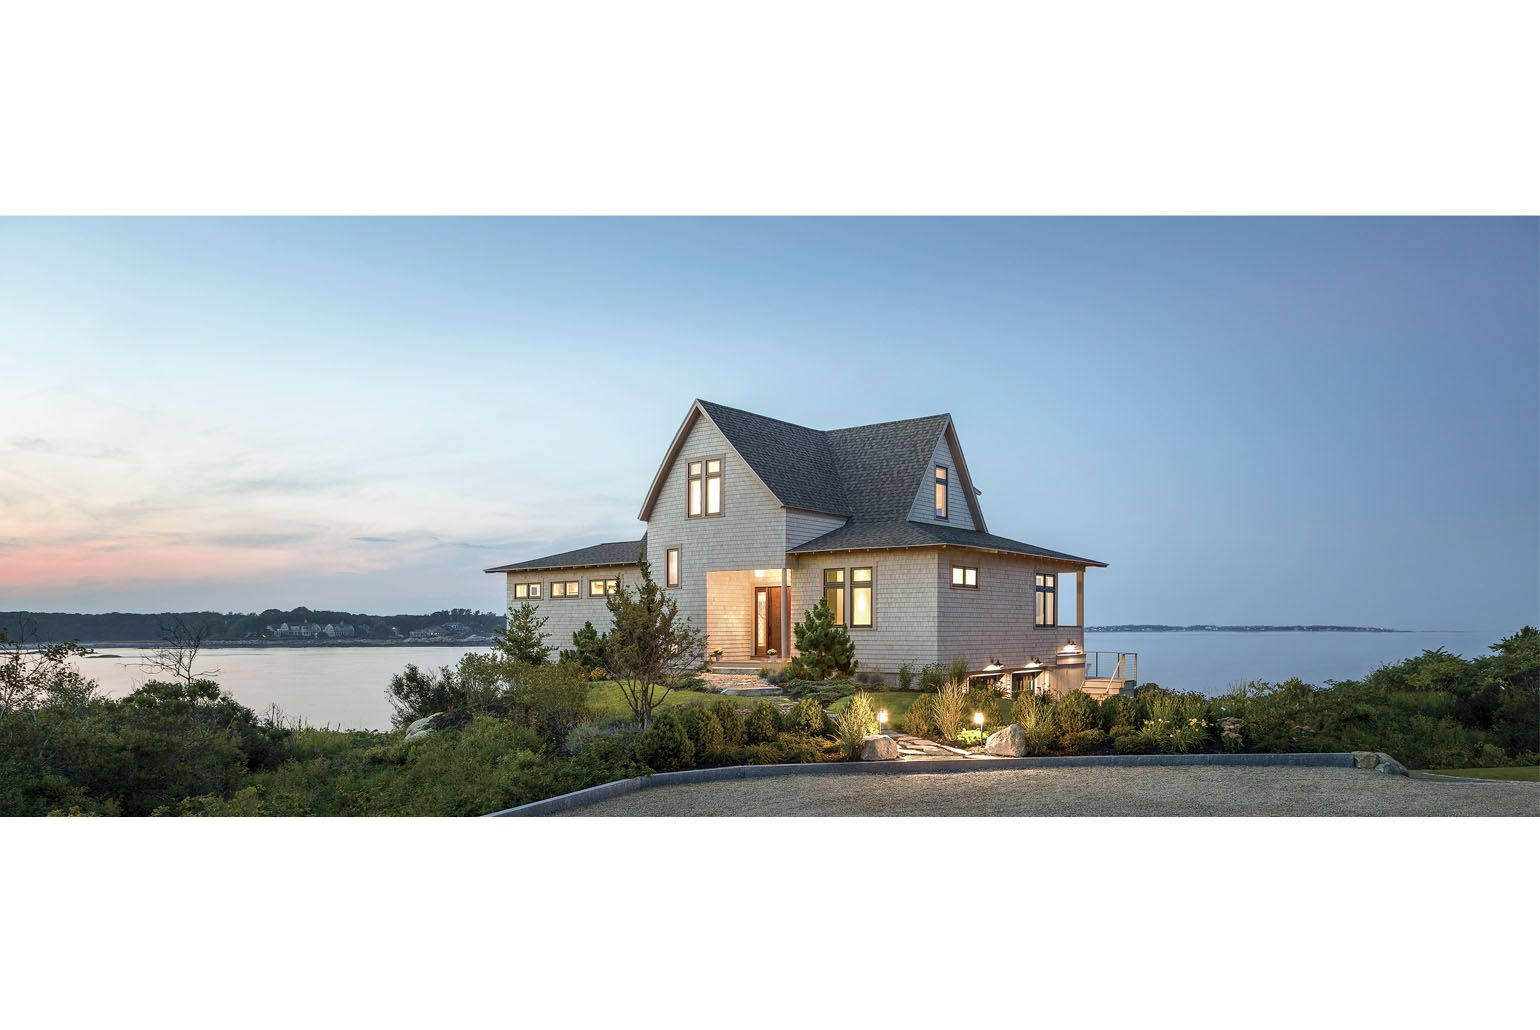 fine homebuilding s best new home balances a traditional form with